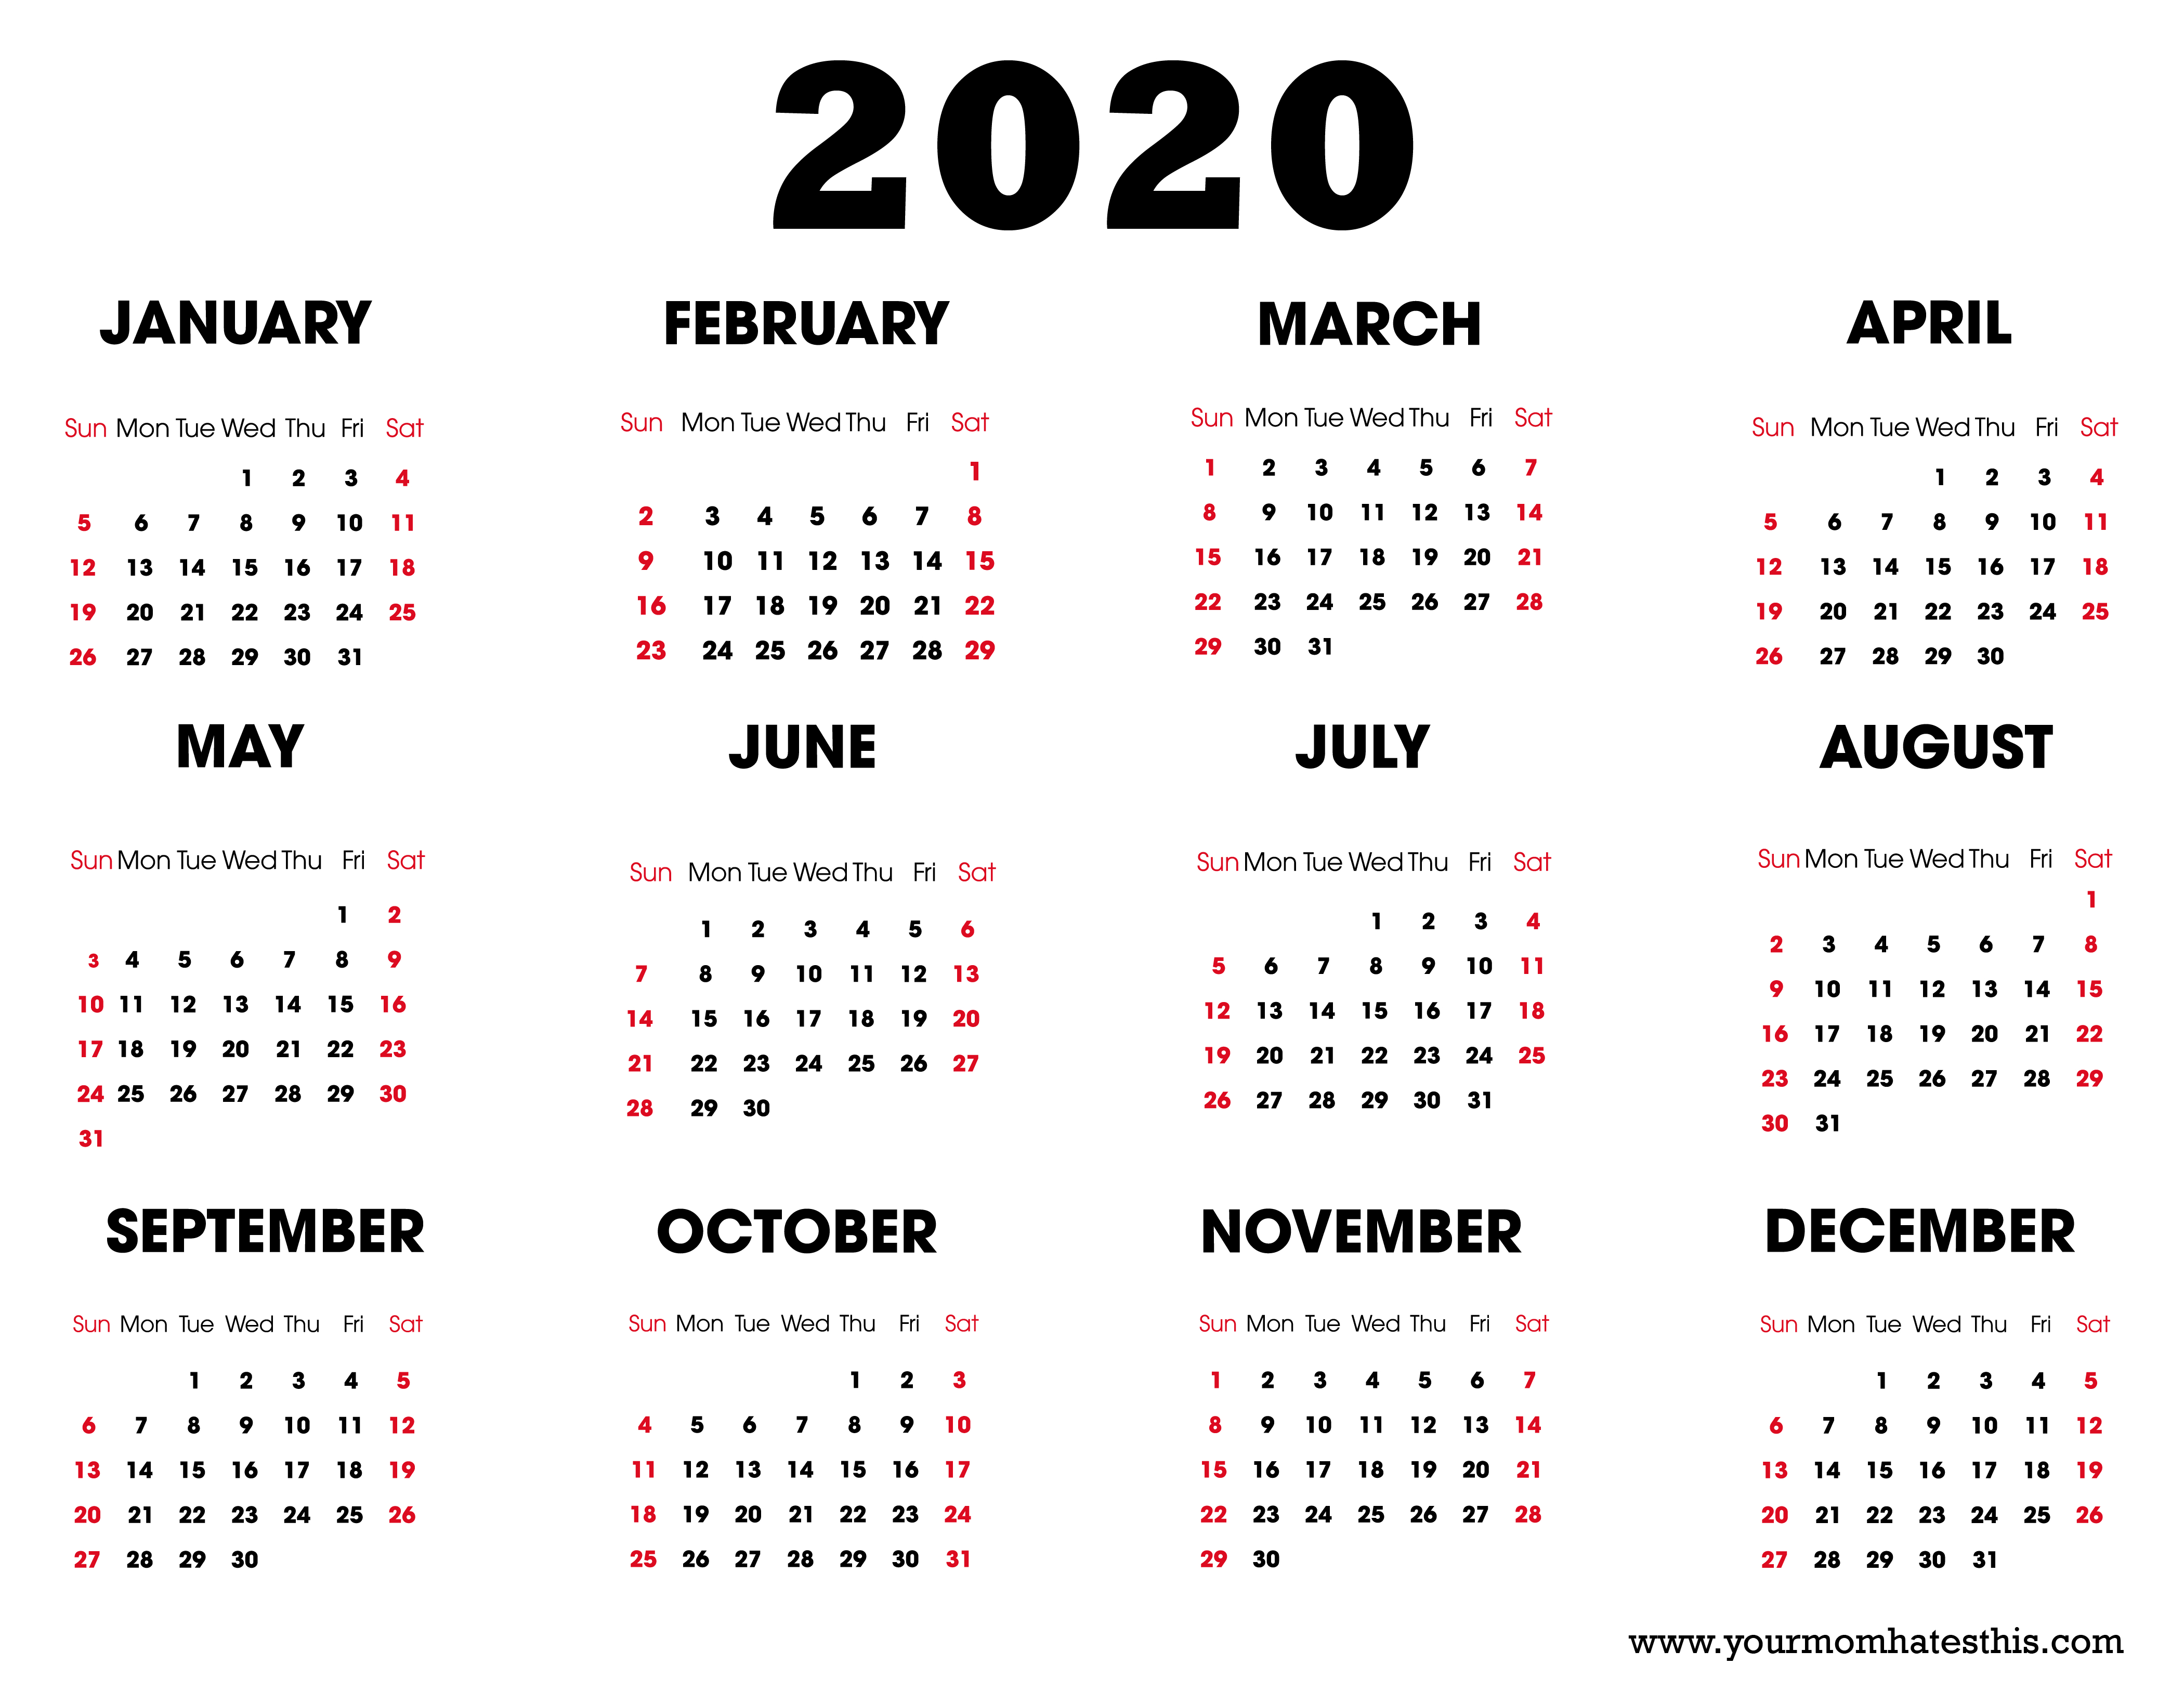 2020 Printable Calendar - Download Free Blank Templates - Daily with regard to Free Printable Calendar For 2020 With No Download